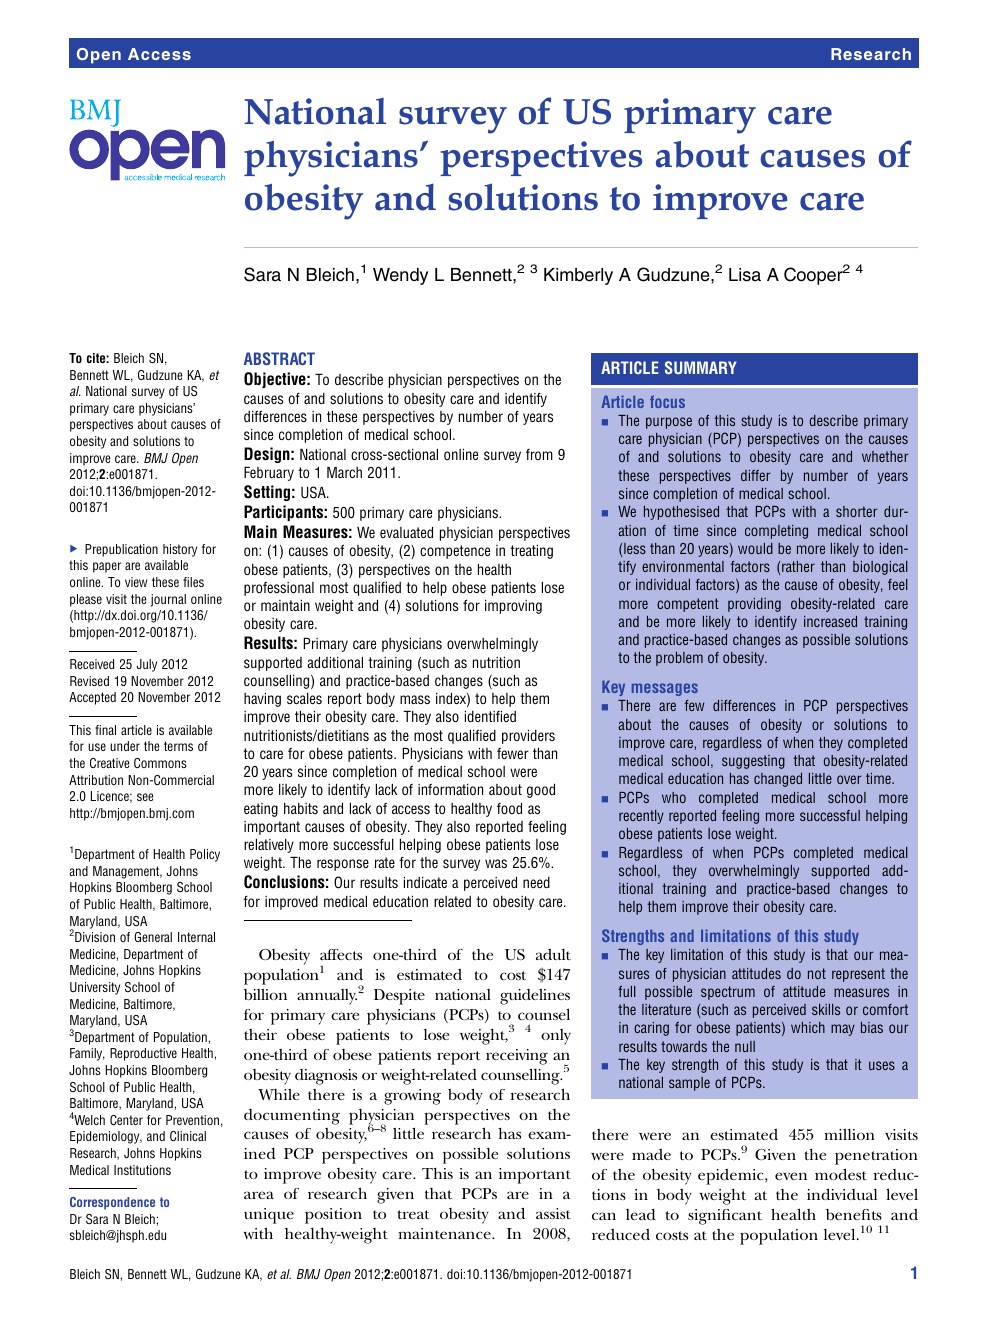 National Survey Of Us Primary Care Physicians Perspectives About Causes Of Obesity And Solutions To Improve Care Topic Of Research Paper In Health Sciences Download Scholarly Article Pdf And Read For